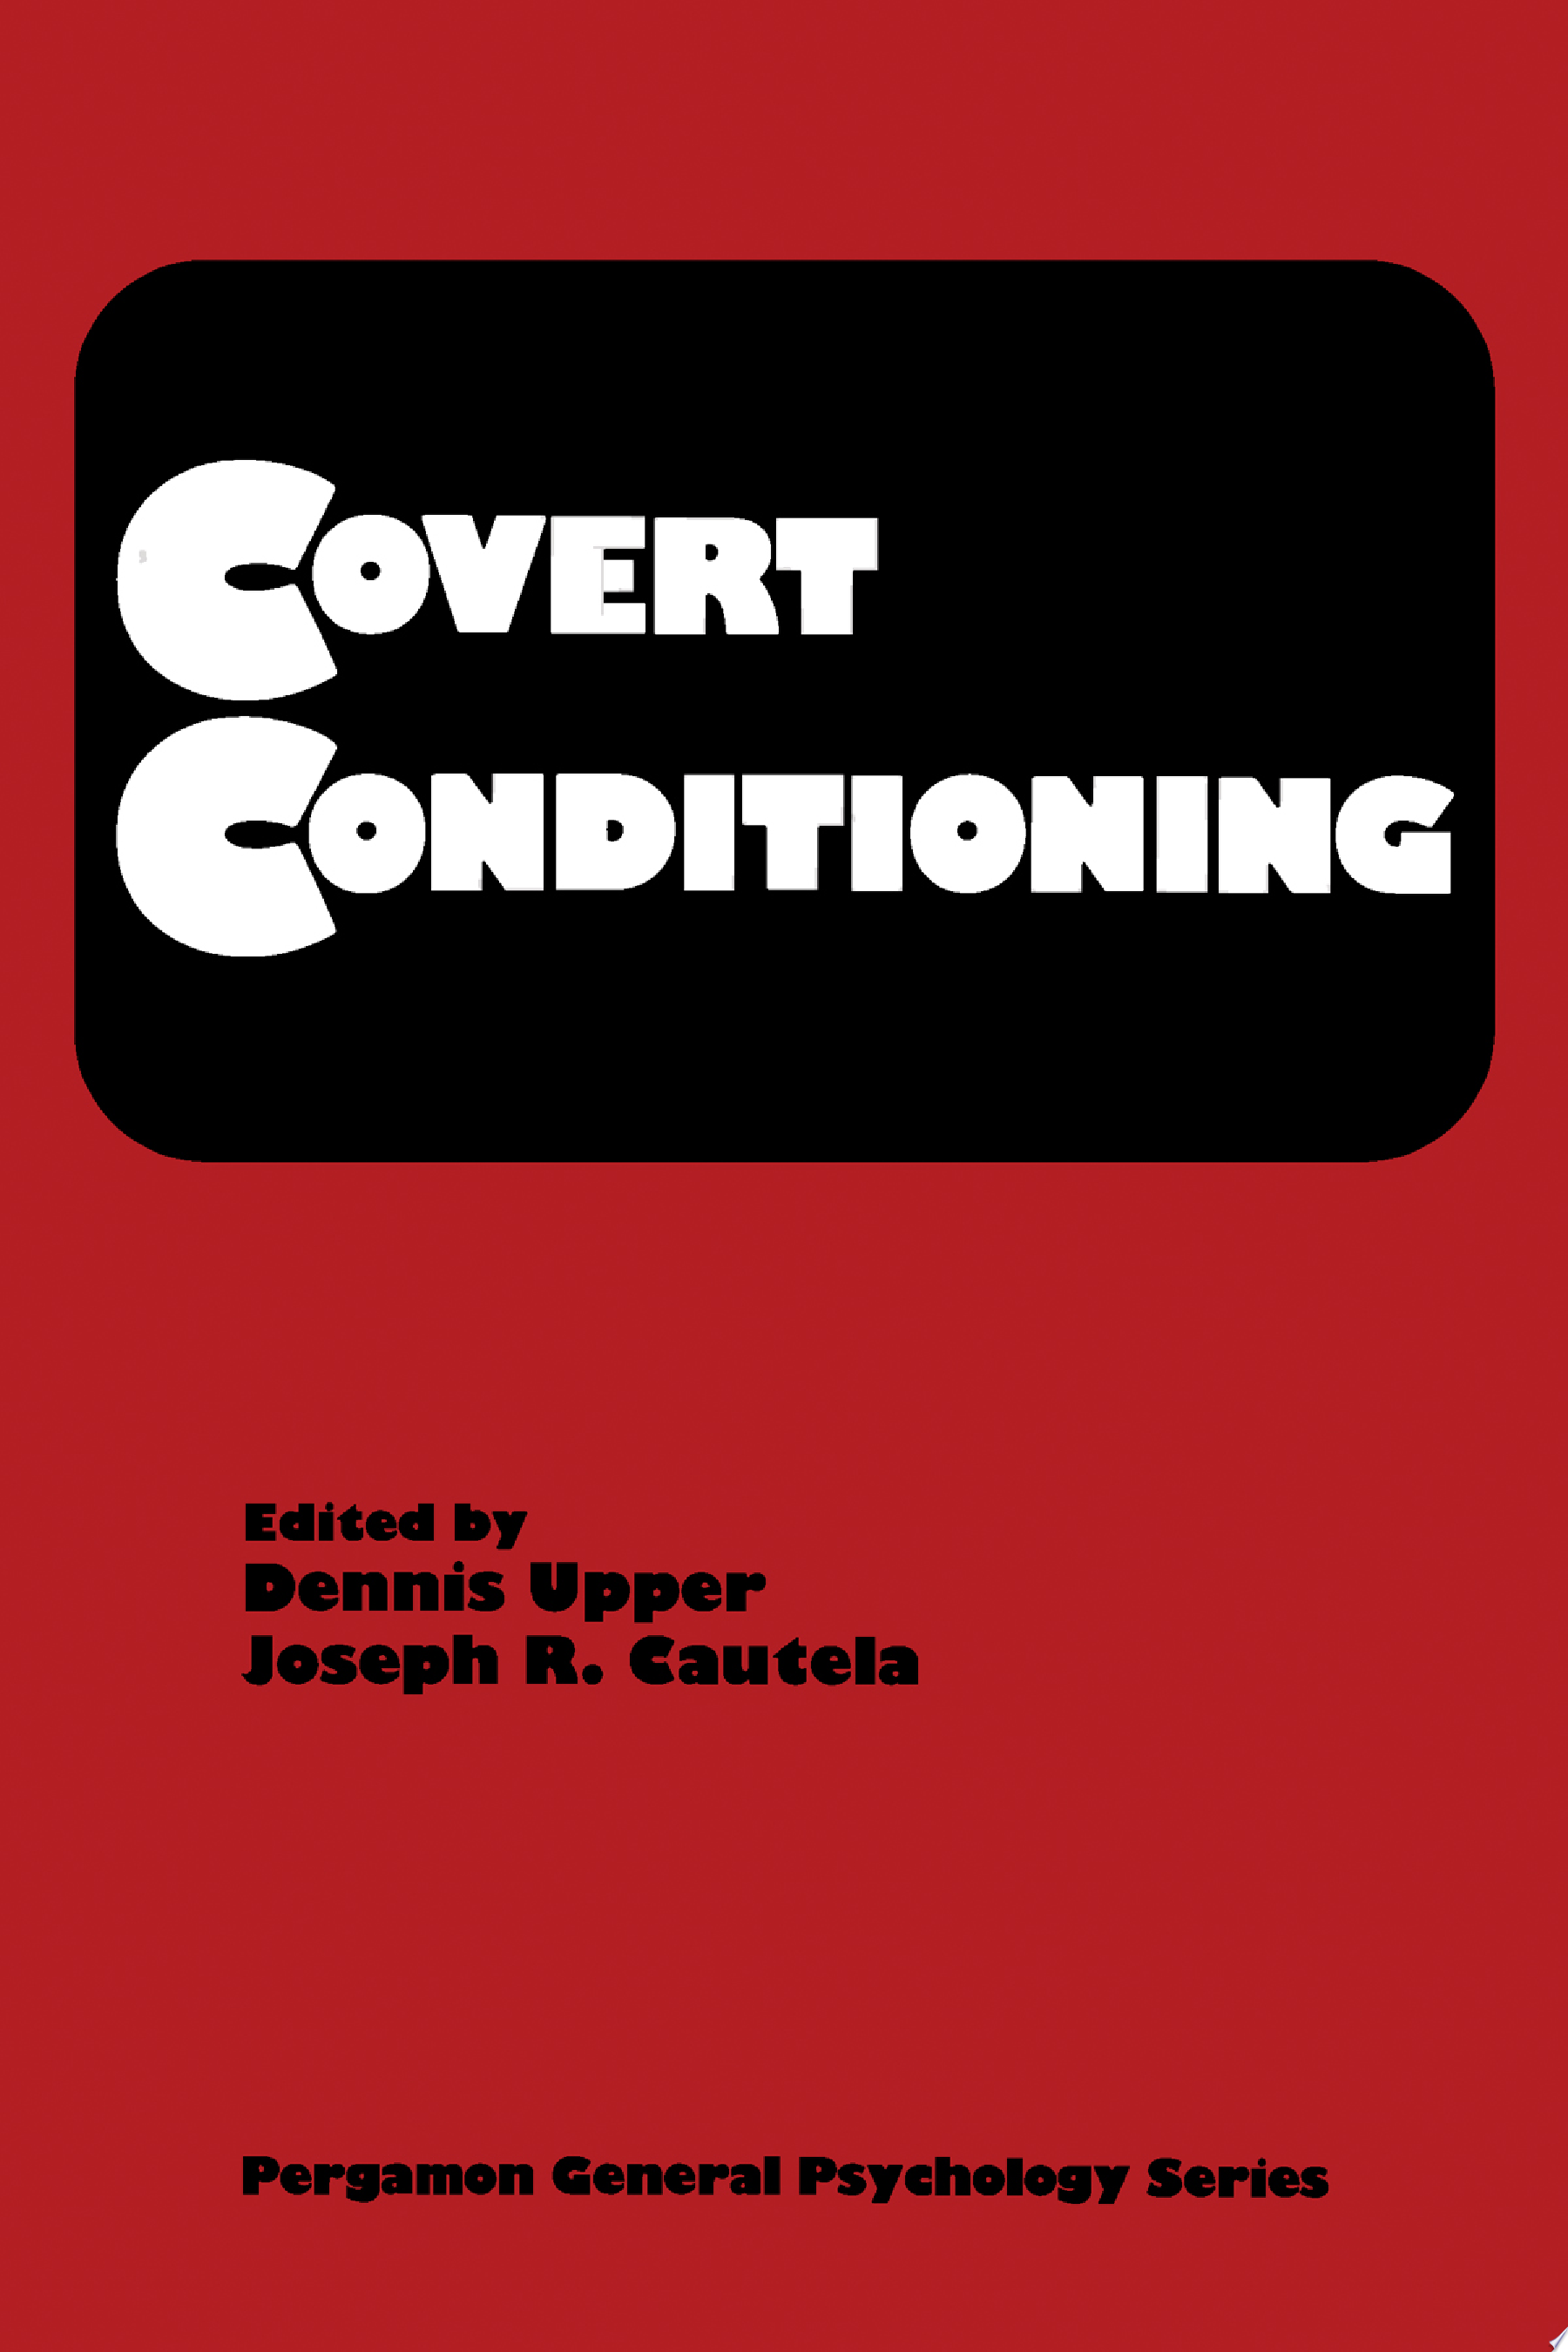 Covert Conditioning